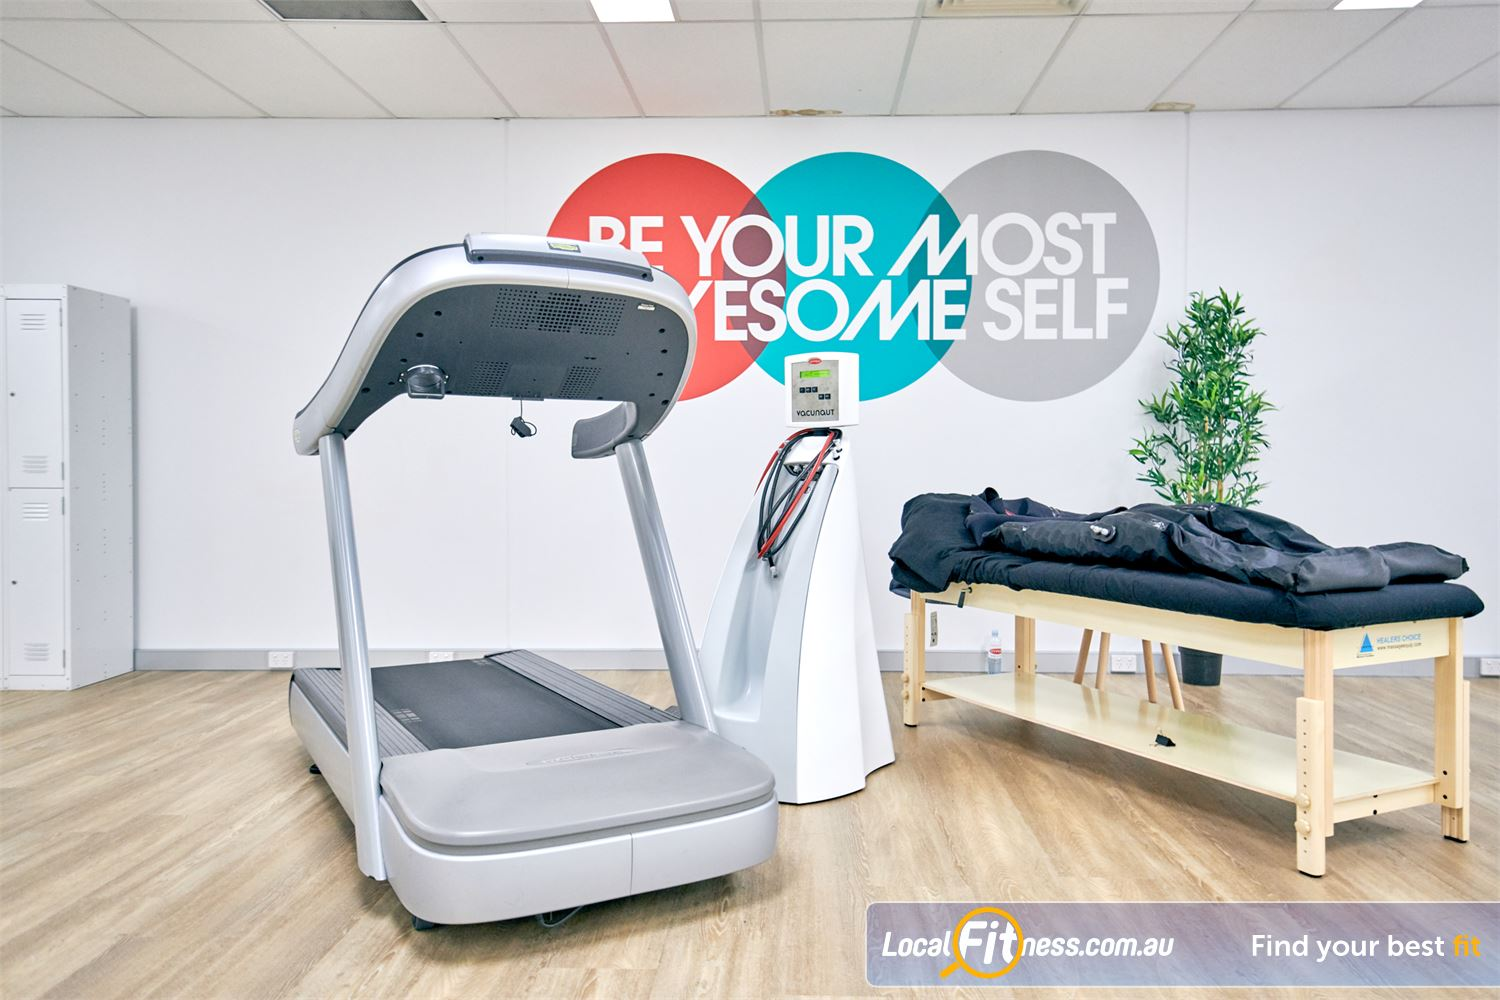 HYPOXI Weight Loss Near Moore Park Our HYPOXI machine works by artificially stimulating your blood supply to the fat around the stomach.